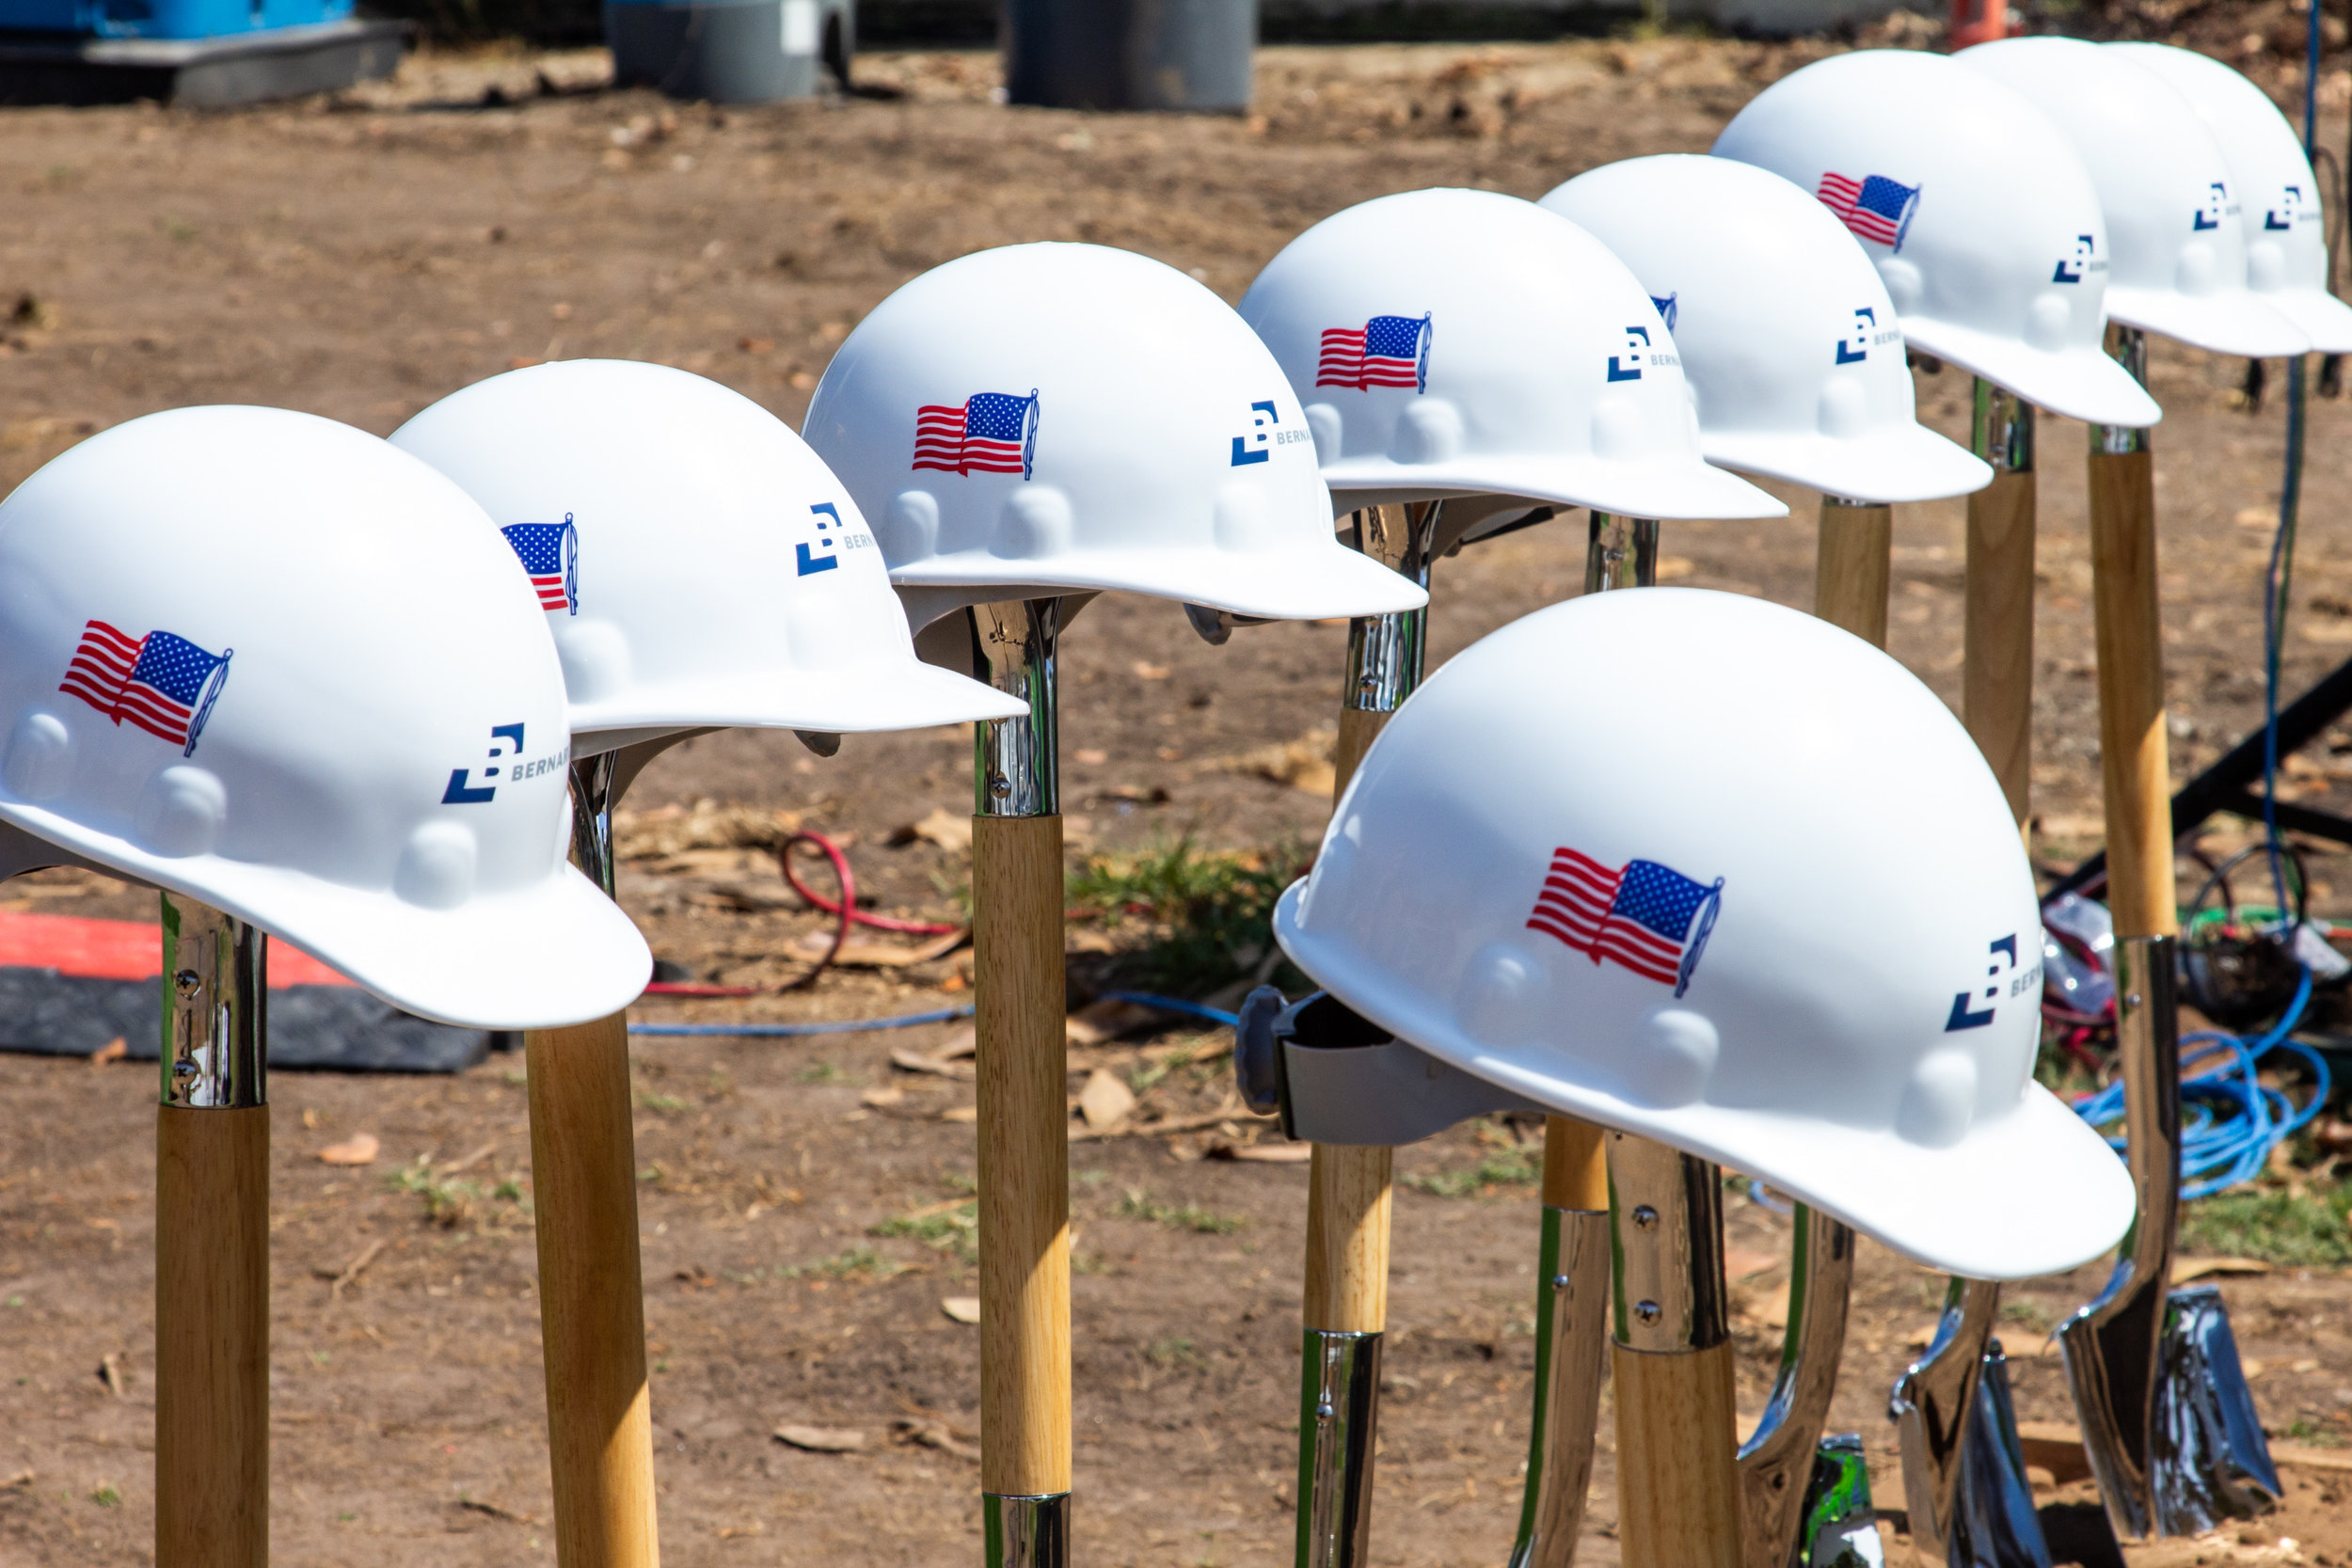 Hard hats sit on shovels in preparation for the groundbreaking ceremony for the John Adams Middle School Performing Arts Complex in Santa Monica, California, on Wednesday, August 28th, 2019. (Marco Pallotti/ The Corsair)